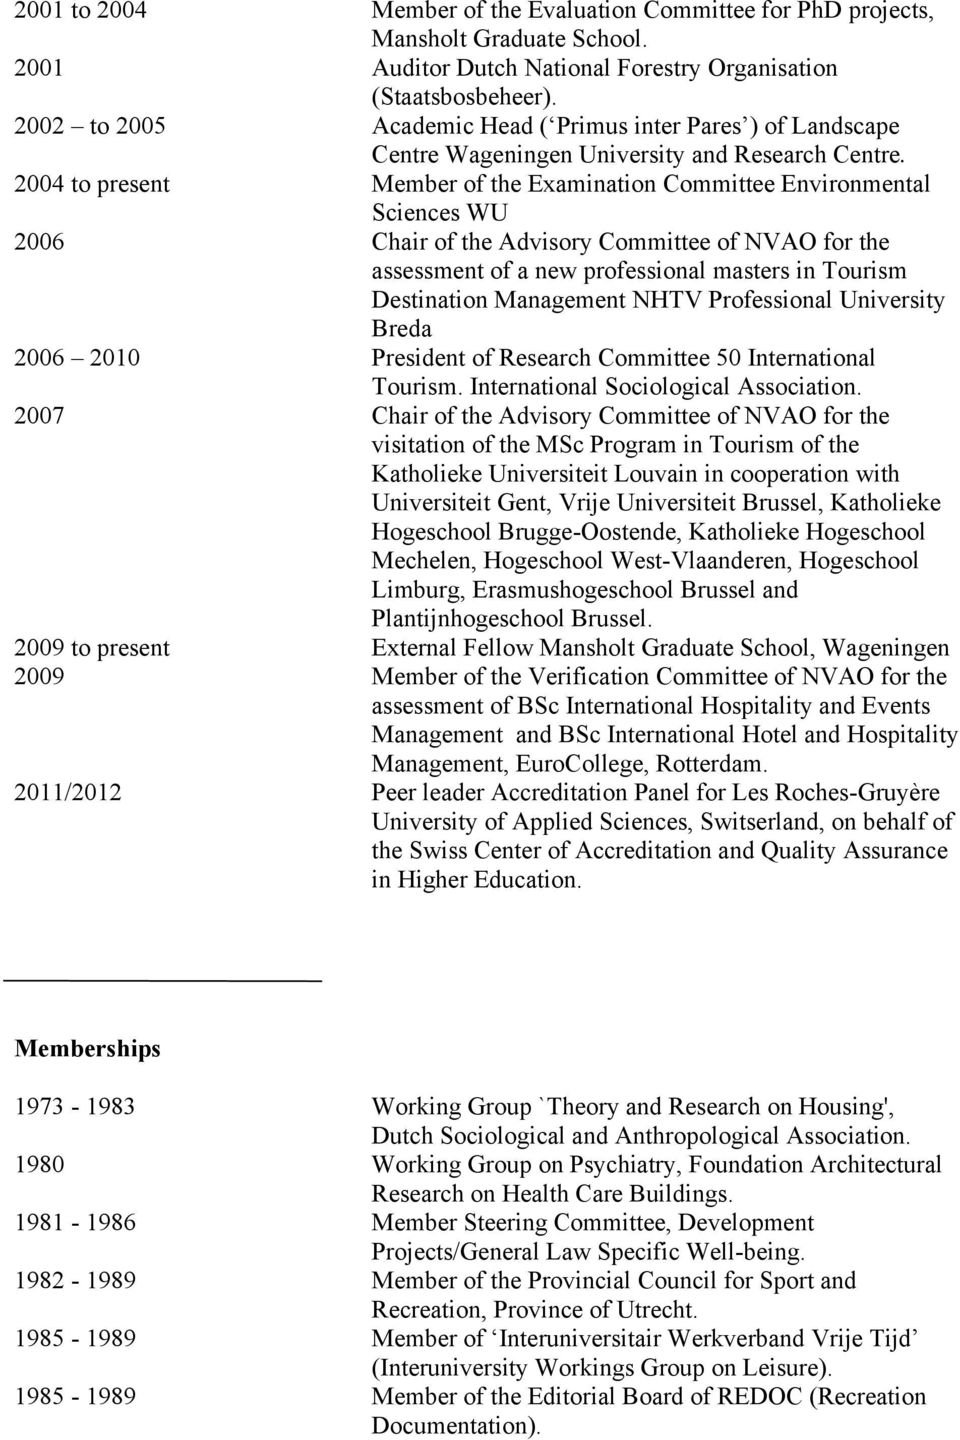 2004 to present Member of the Examination Committee Environmental Sciences WU 2006 Chair of the Advisory Committee of NVAO for the assessment of a new professional masters in Tourism Destination